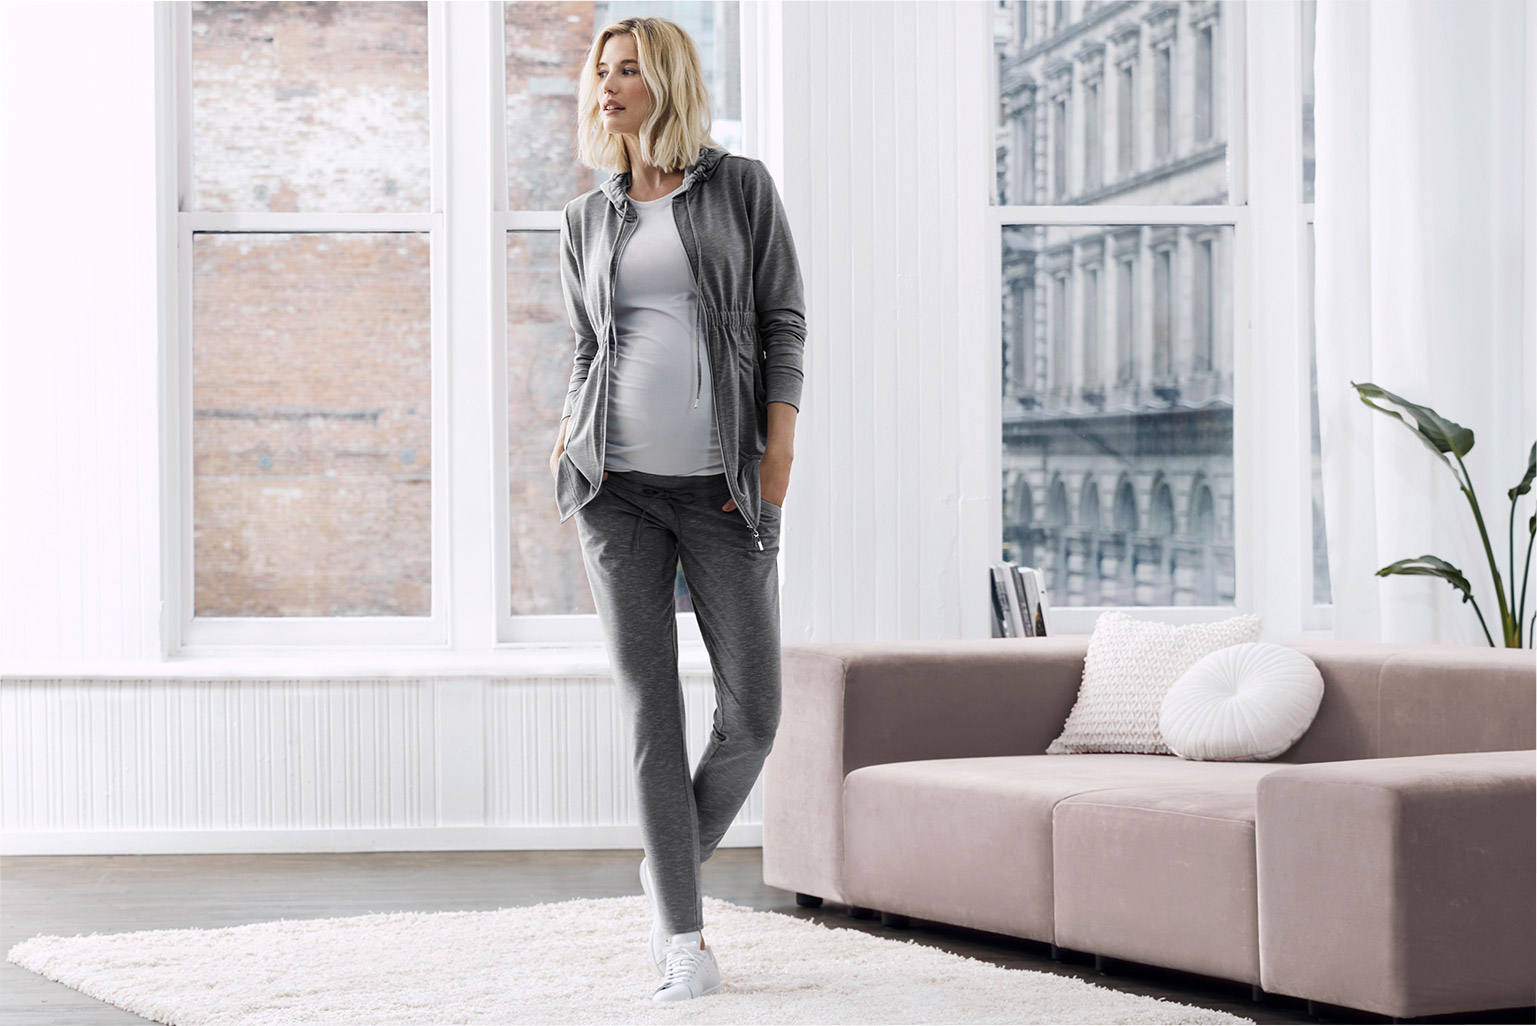 The Sweatpant. Expertly designed for a day of lounging